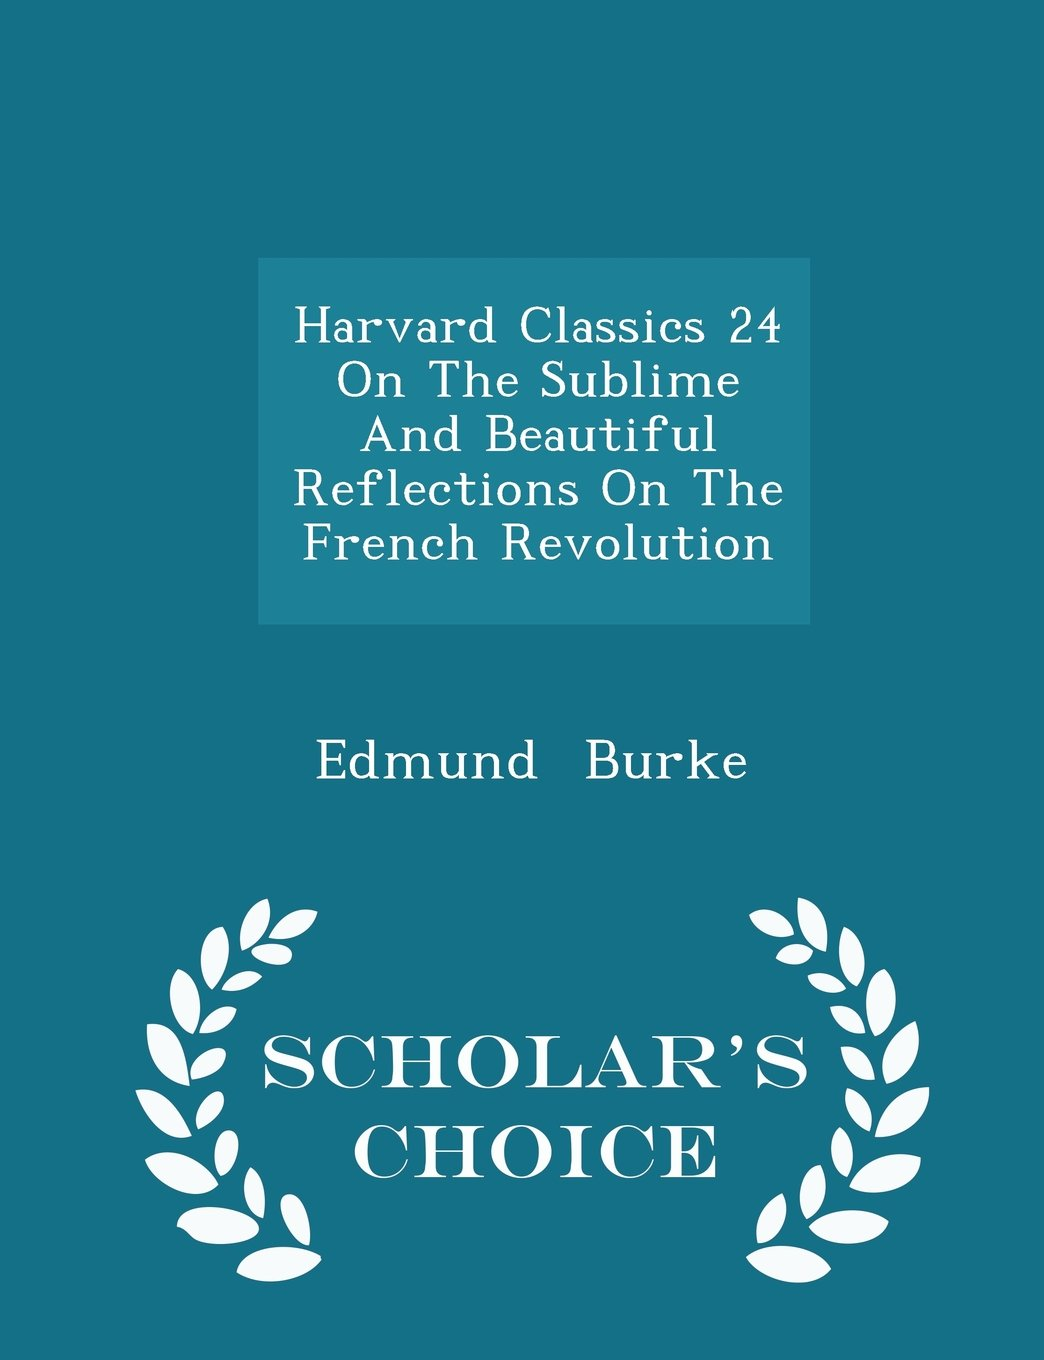 Download Harvard Classics 24 On The Sublime And Beautiful Reflections On The French Revolution  - Scholar's Choice Edition pdf